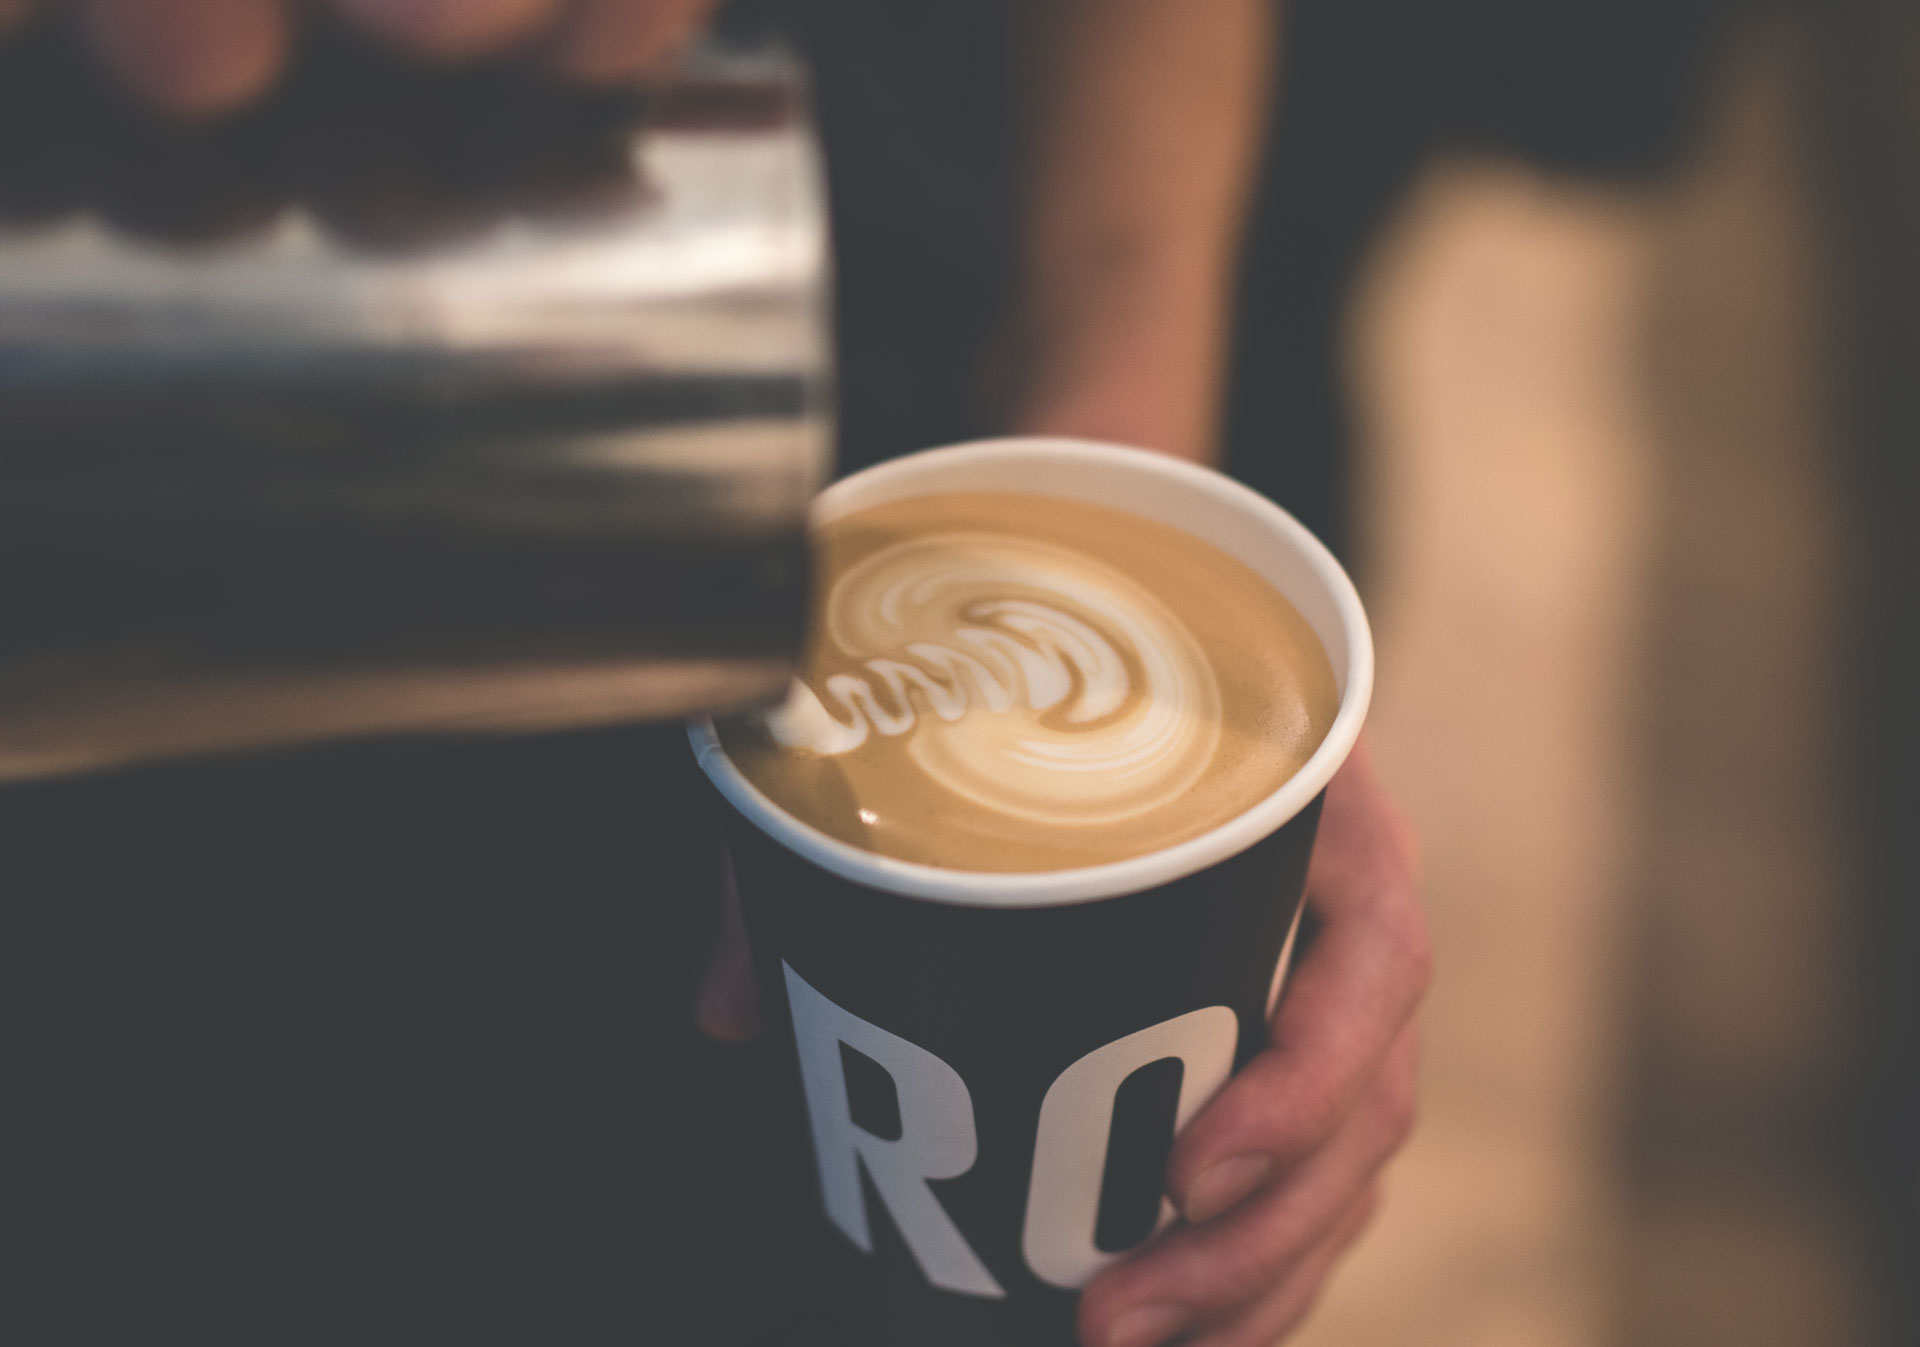 Get a premium coffee fix at Rosso Coffee Roasters.